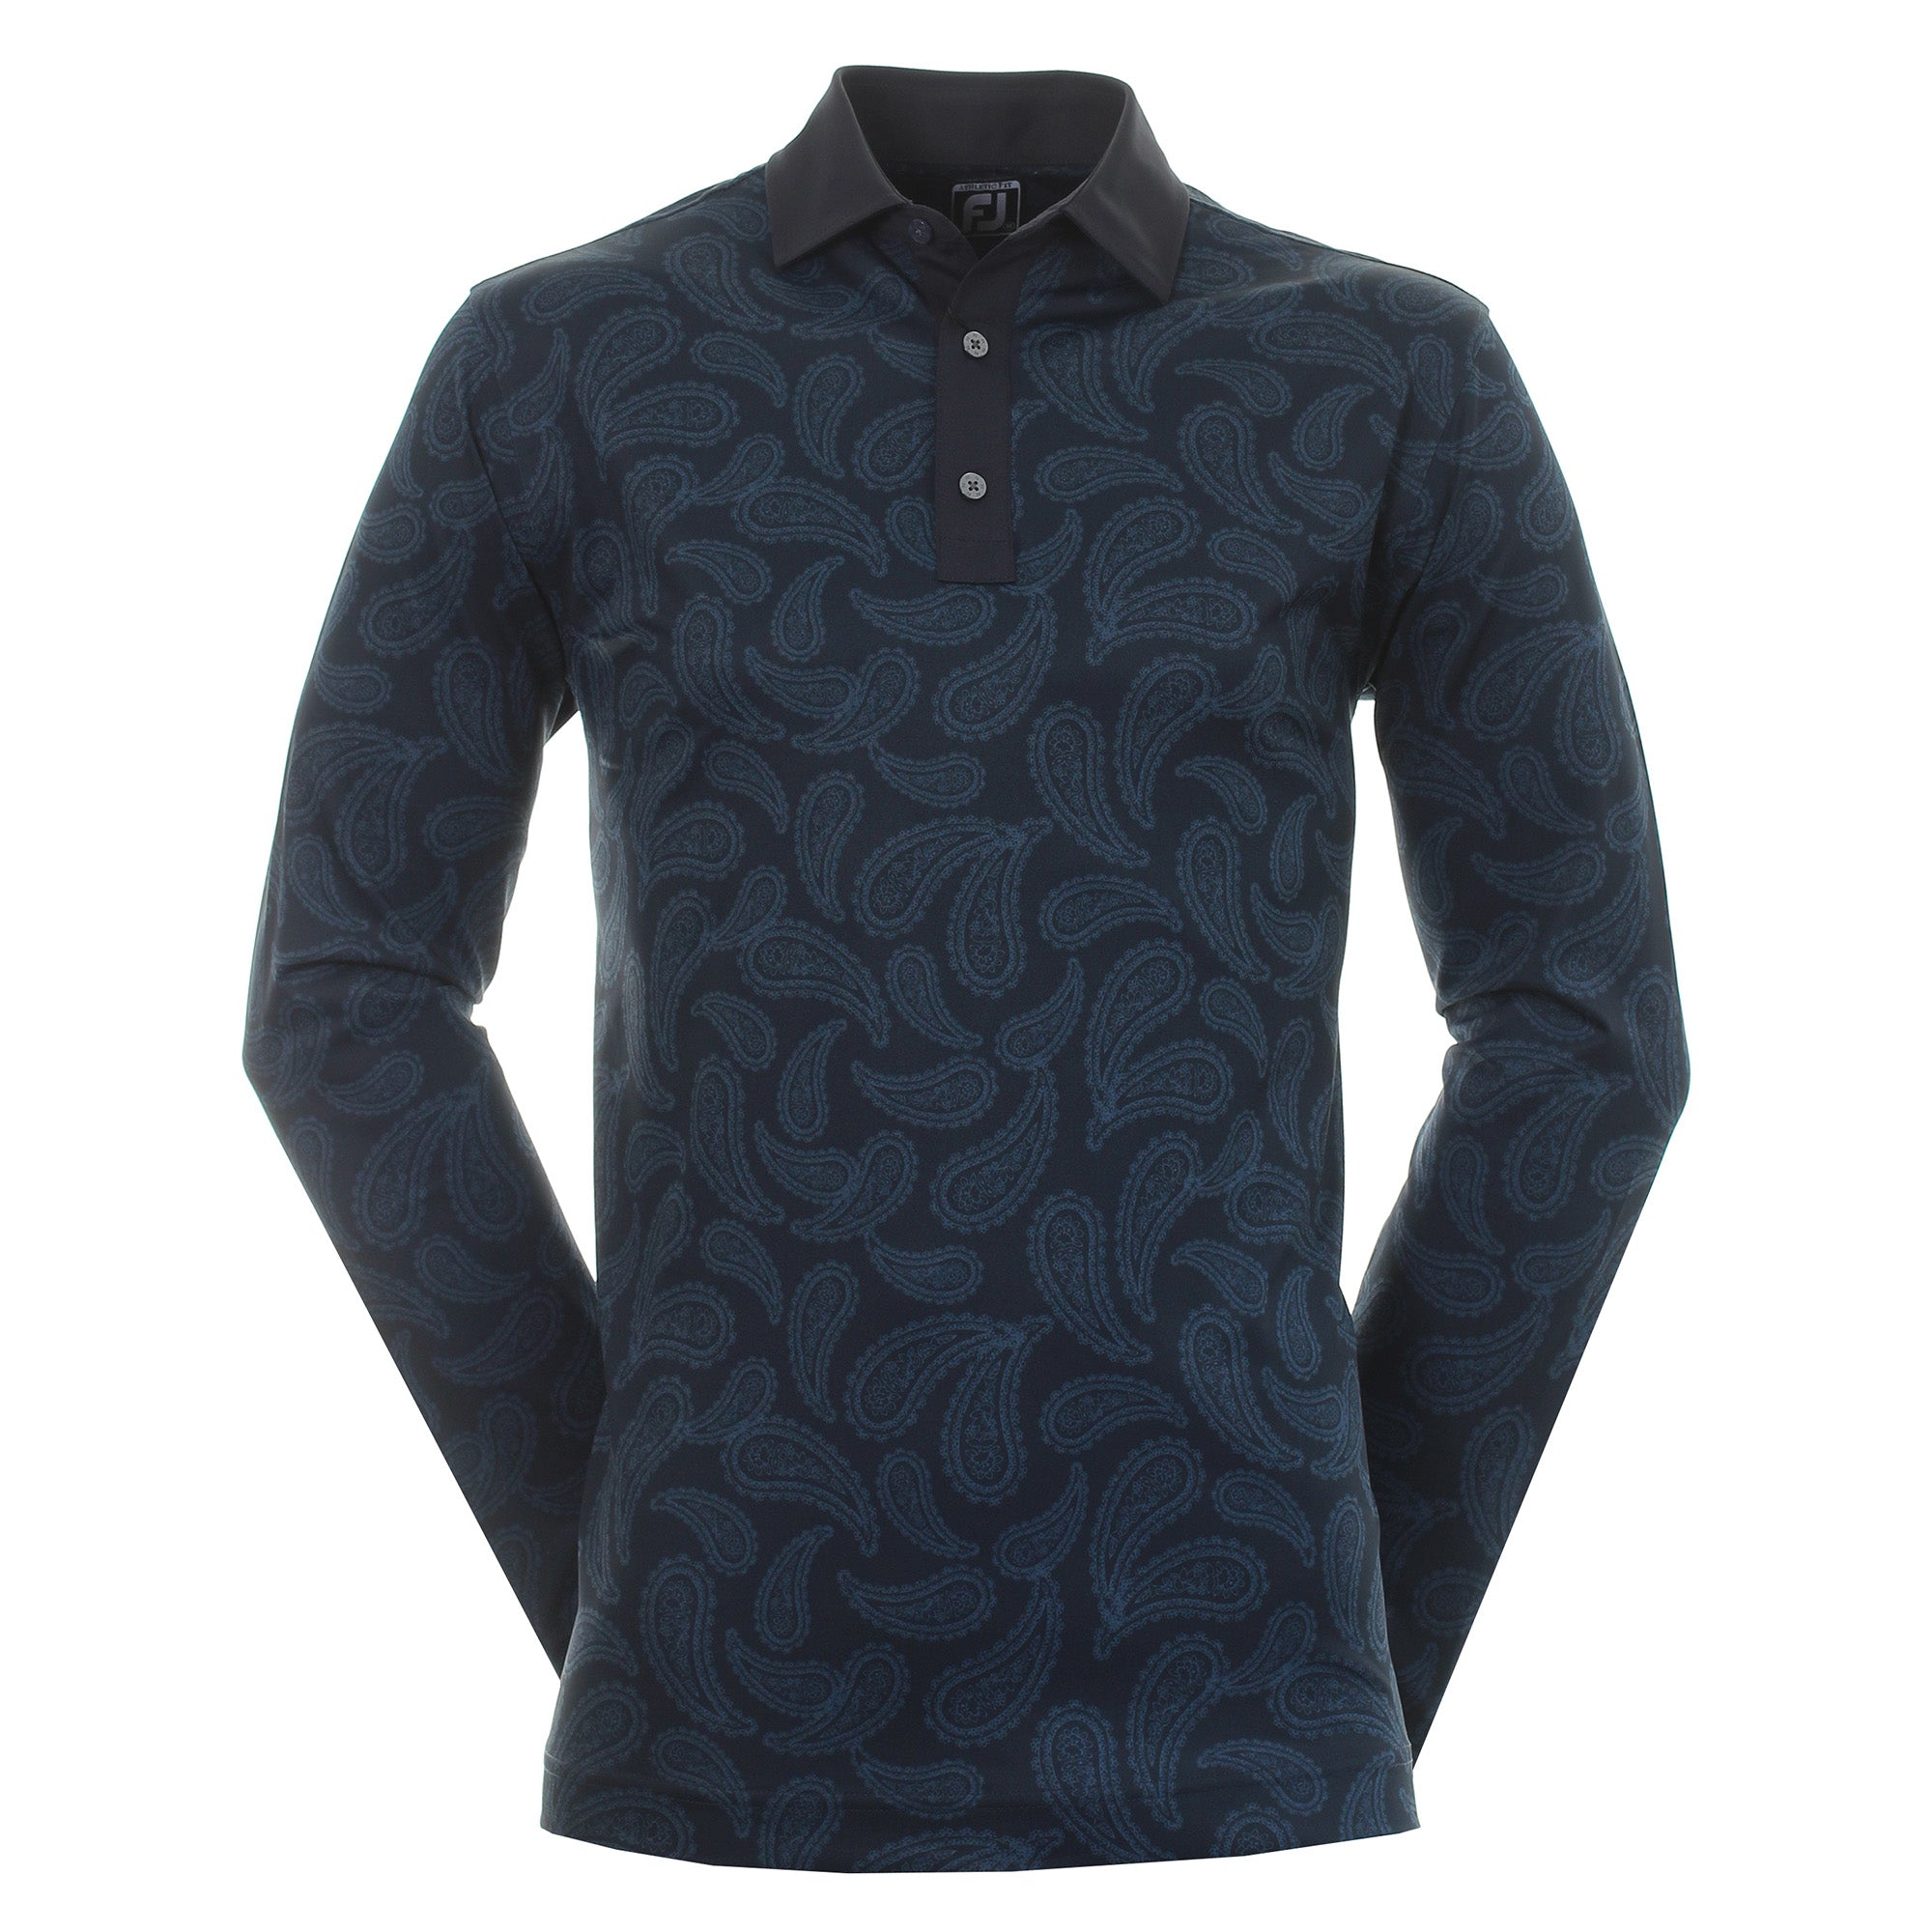 FootJoy Long Sleeve Paisley Print Golf Shirt